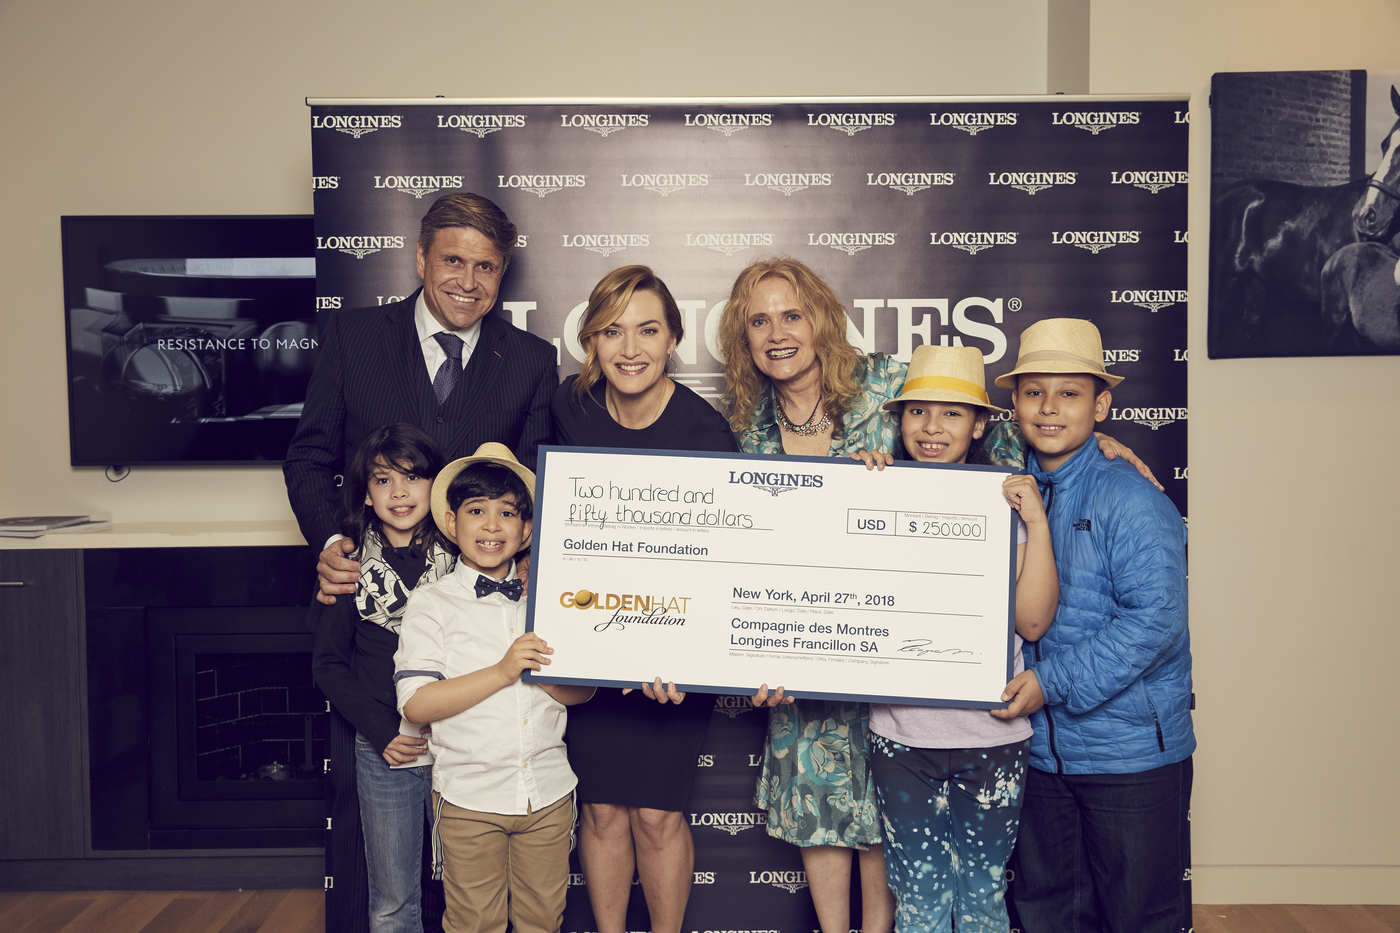 Longines Corporate Event: Longines welcomes its Ambassador of Elegance Kate Winslet in New York for the conclusion of a common charity project for the benefit of the Golden Hat Foundation 3